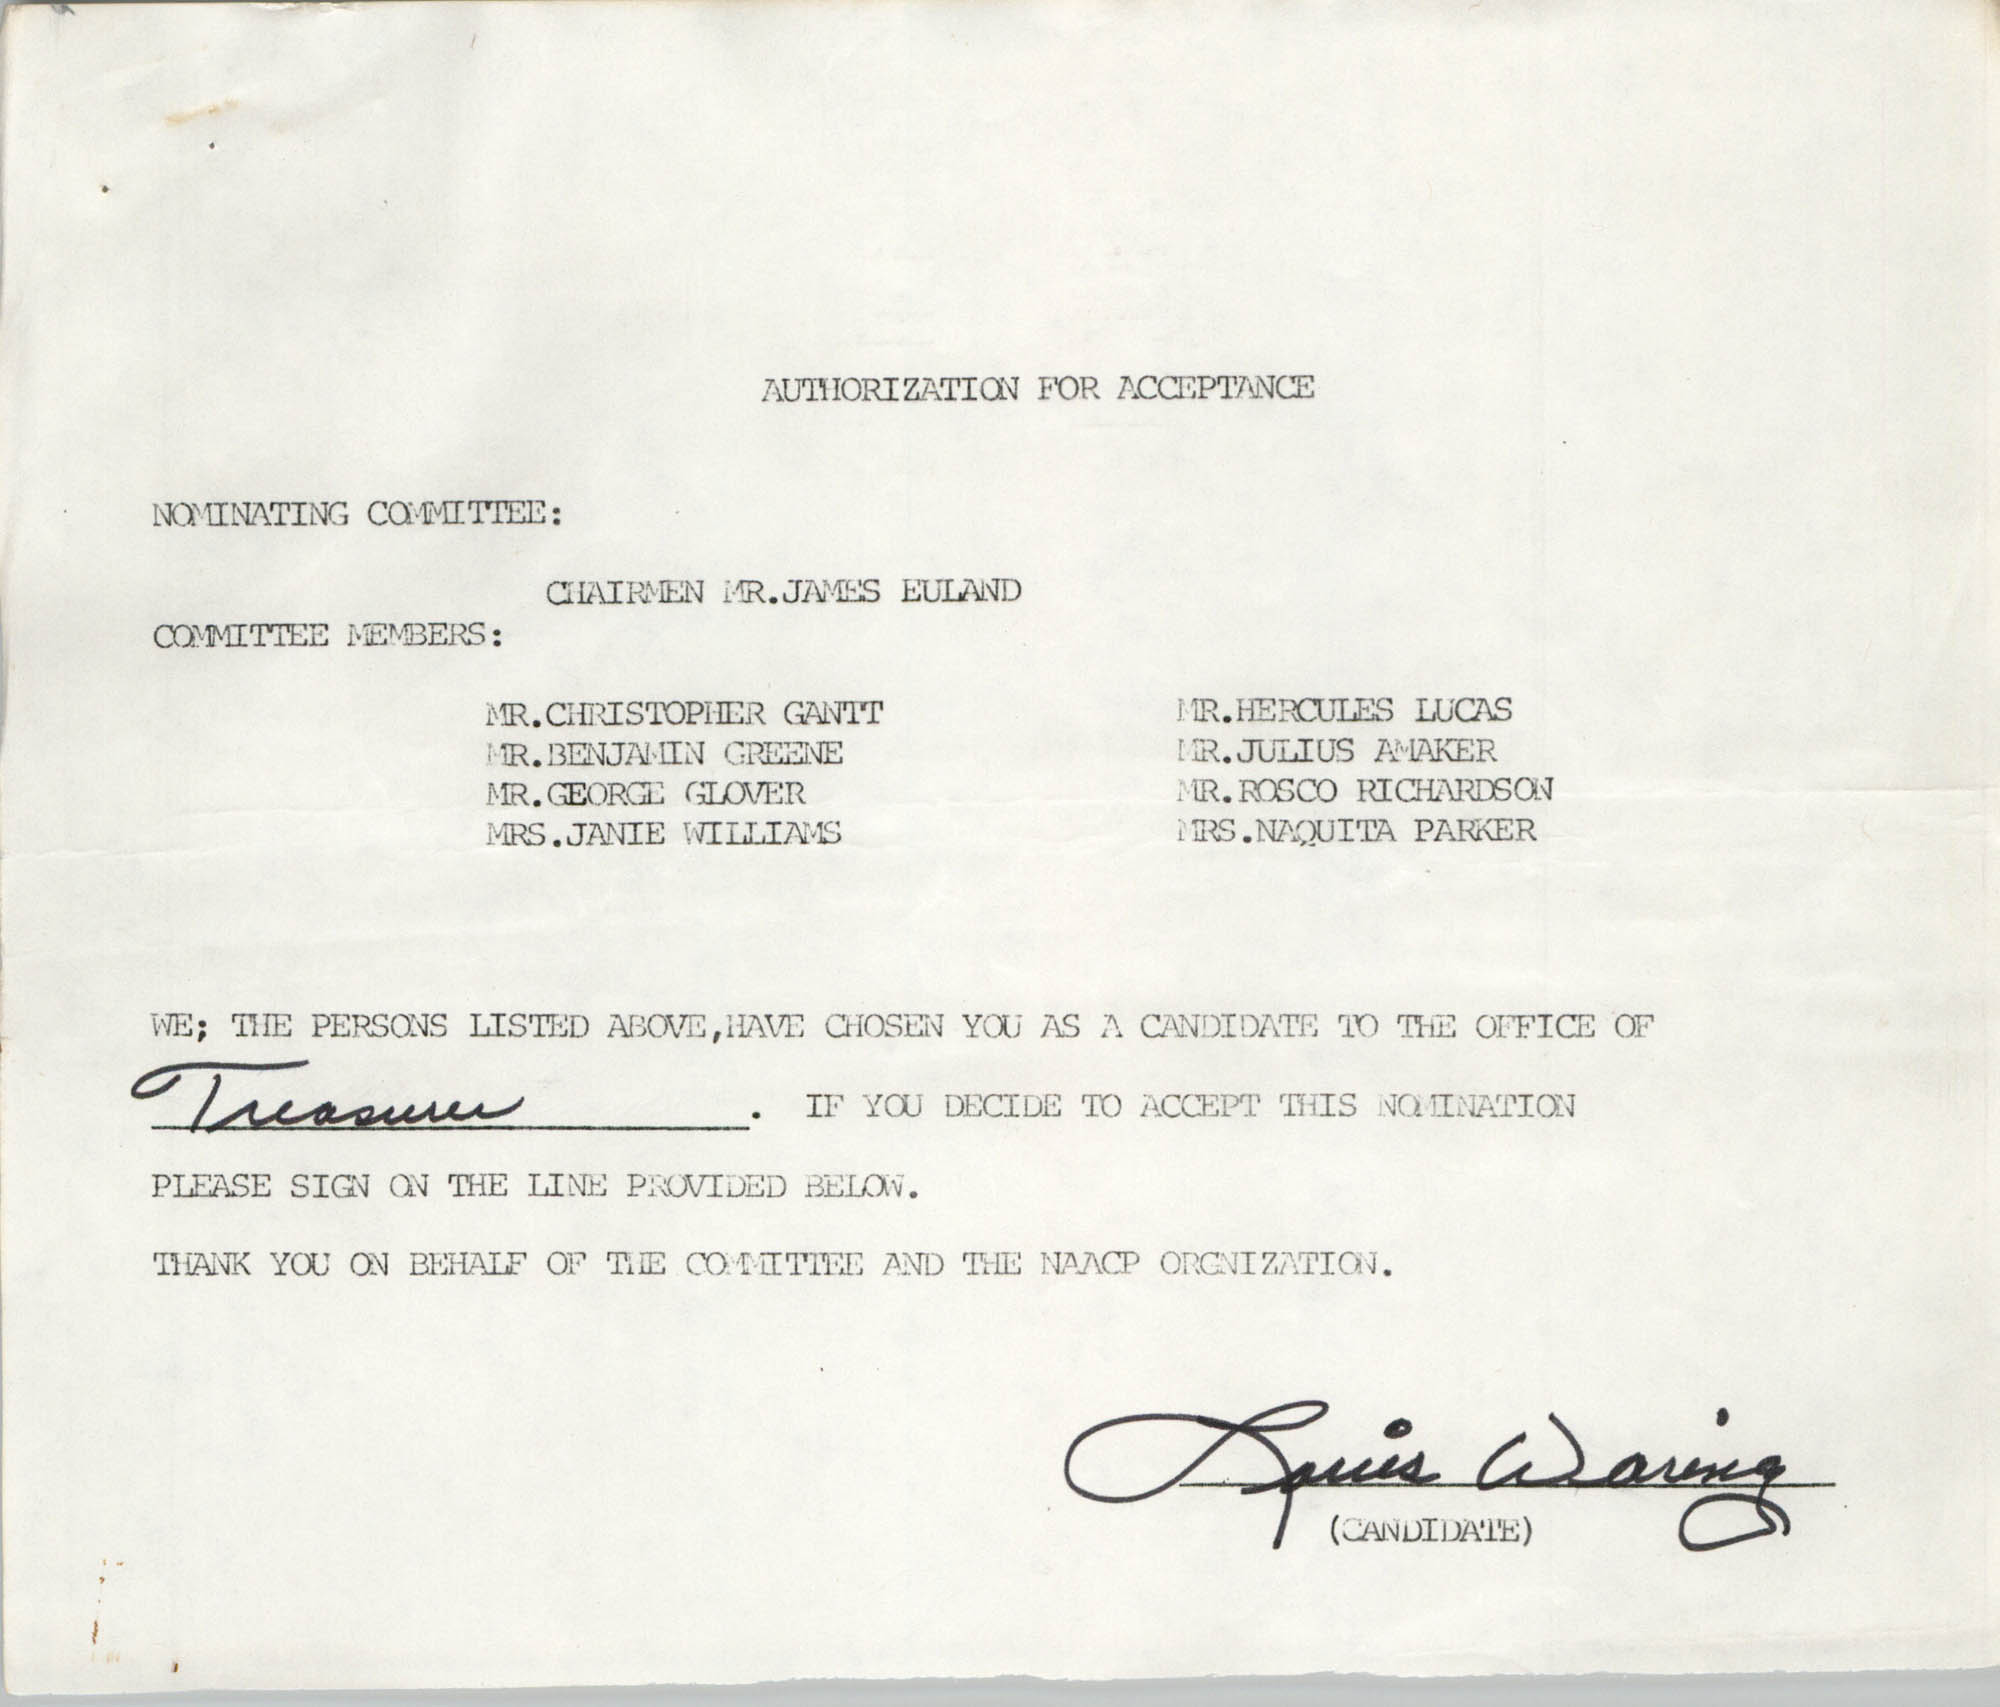 Charleston Branch of the NAACP Election Materials, Authorization for Acceptance for Louis Waring